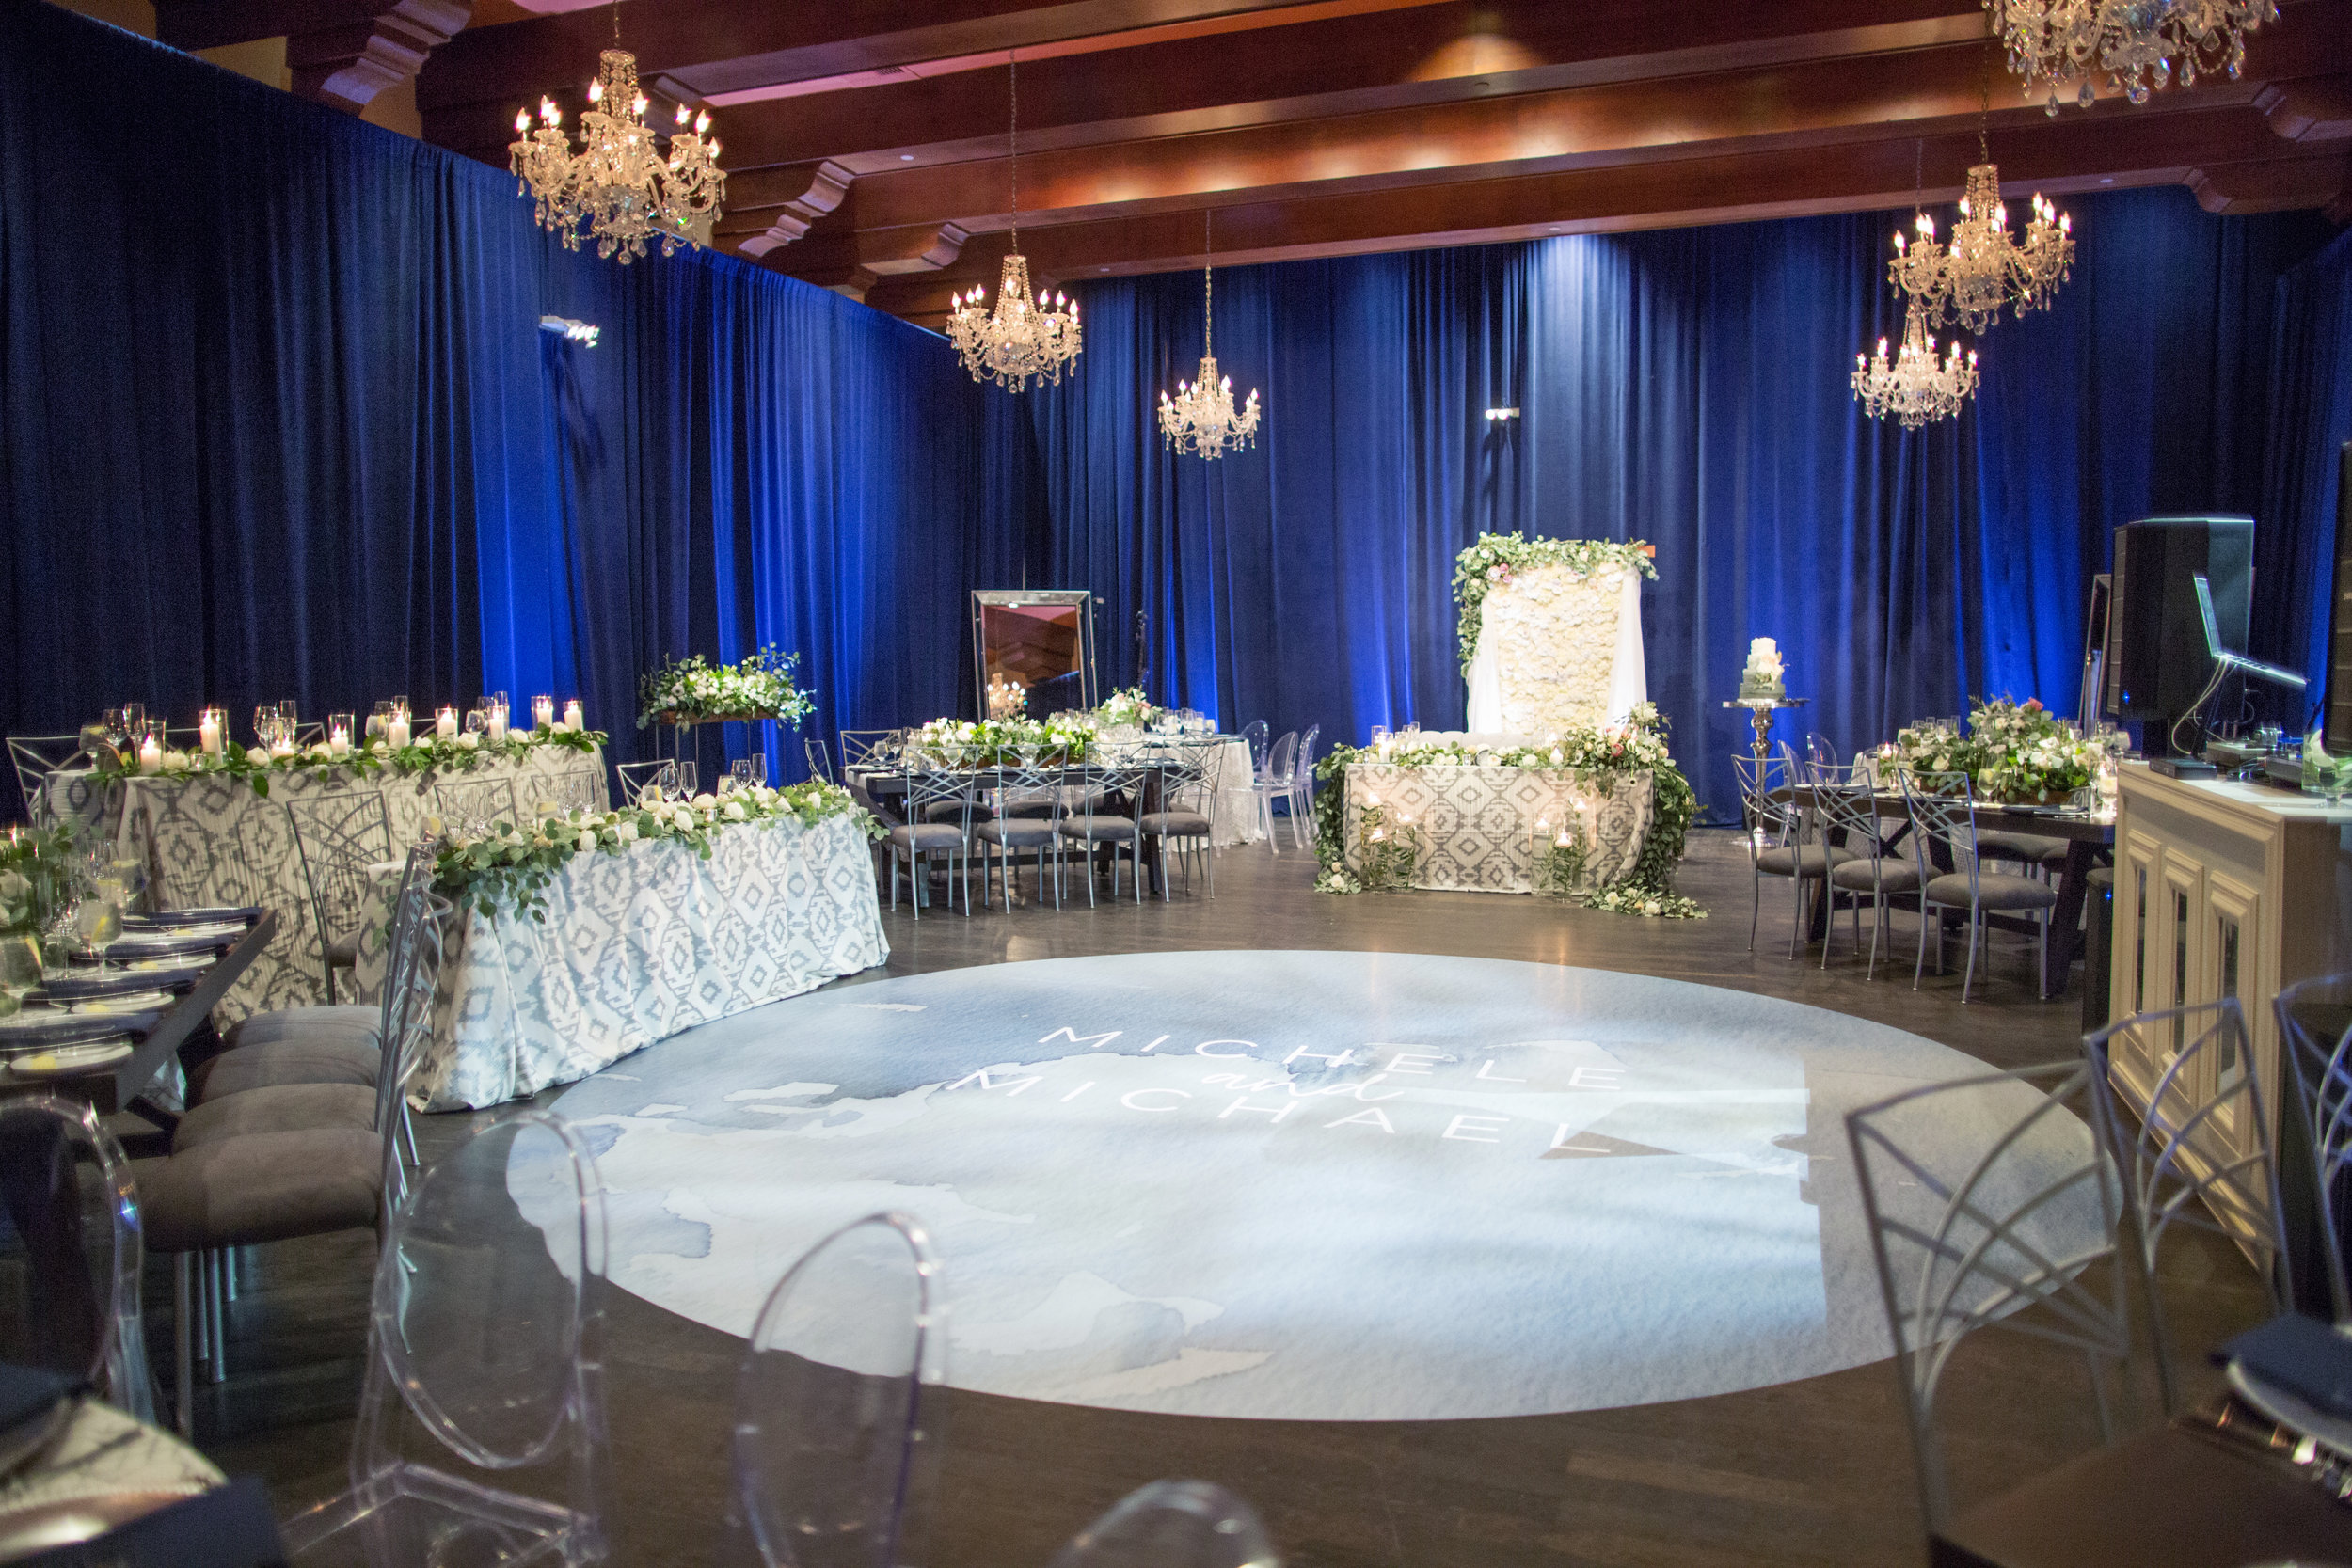 41 wedding reception blue velvet draped walls chandeliers wood beam ceiling custom dance floor decal bride groom name dance floor dinner reception white wedding flowers hydrangea backdrop Life Design Events photos by Melissa Jill Photography.jpg